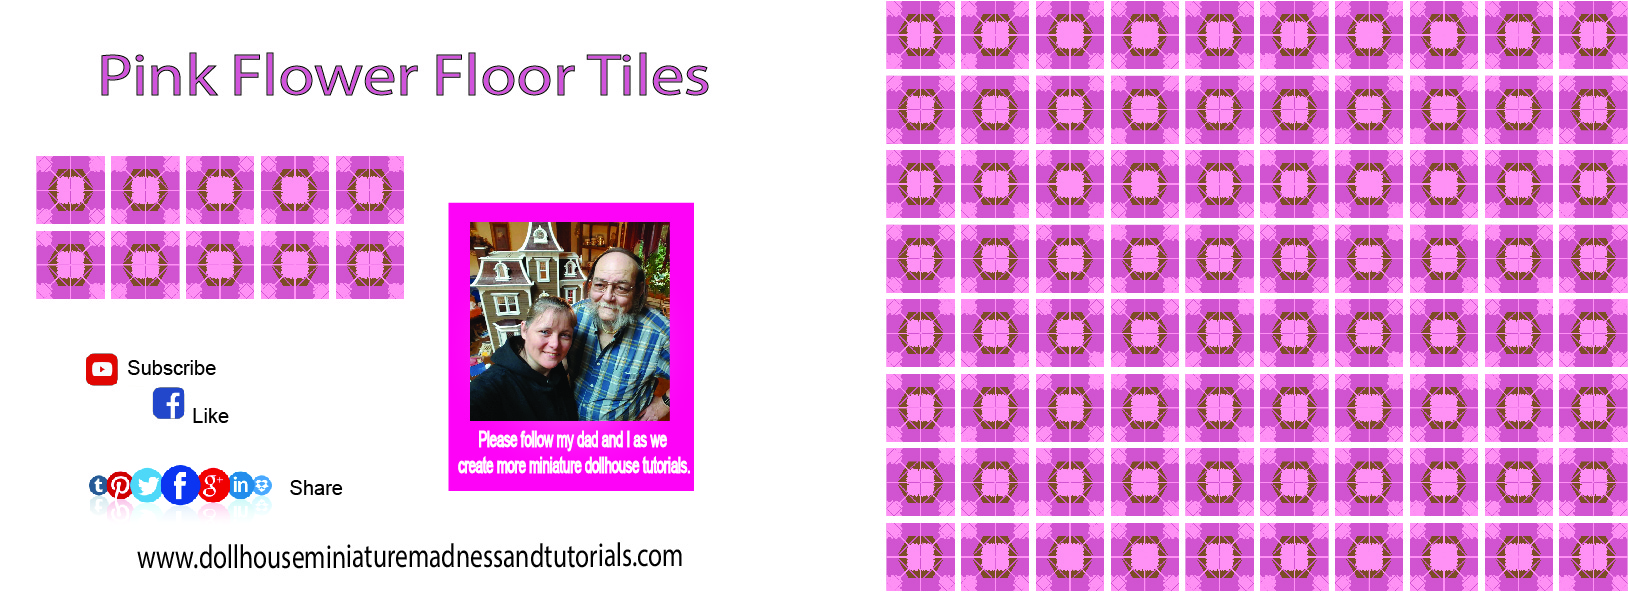 Templates floor wall dollhouse miniature madness and tutorials floor tile pink flowerr 1 110616 dailygadgetfo Gallery